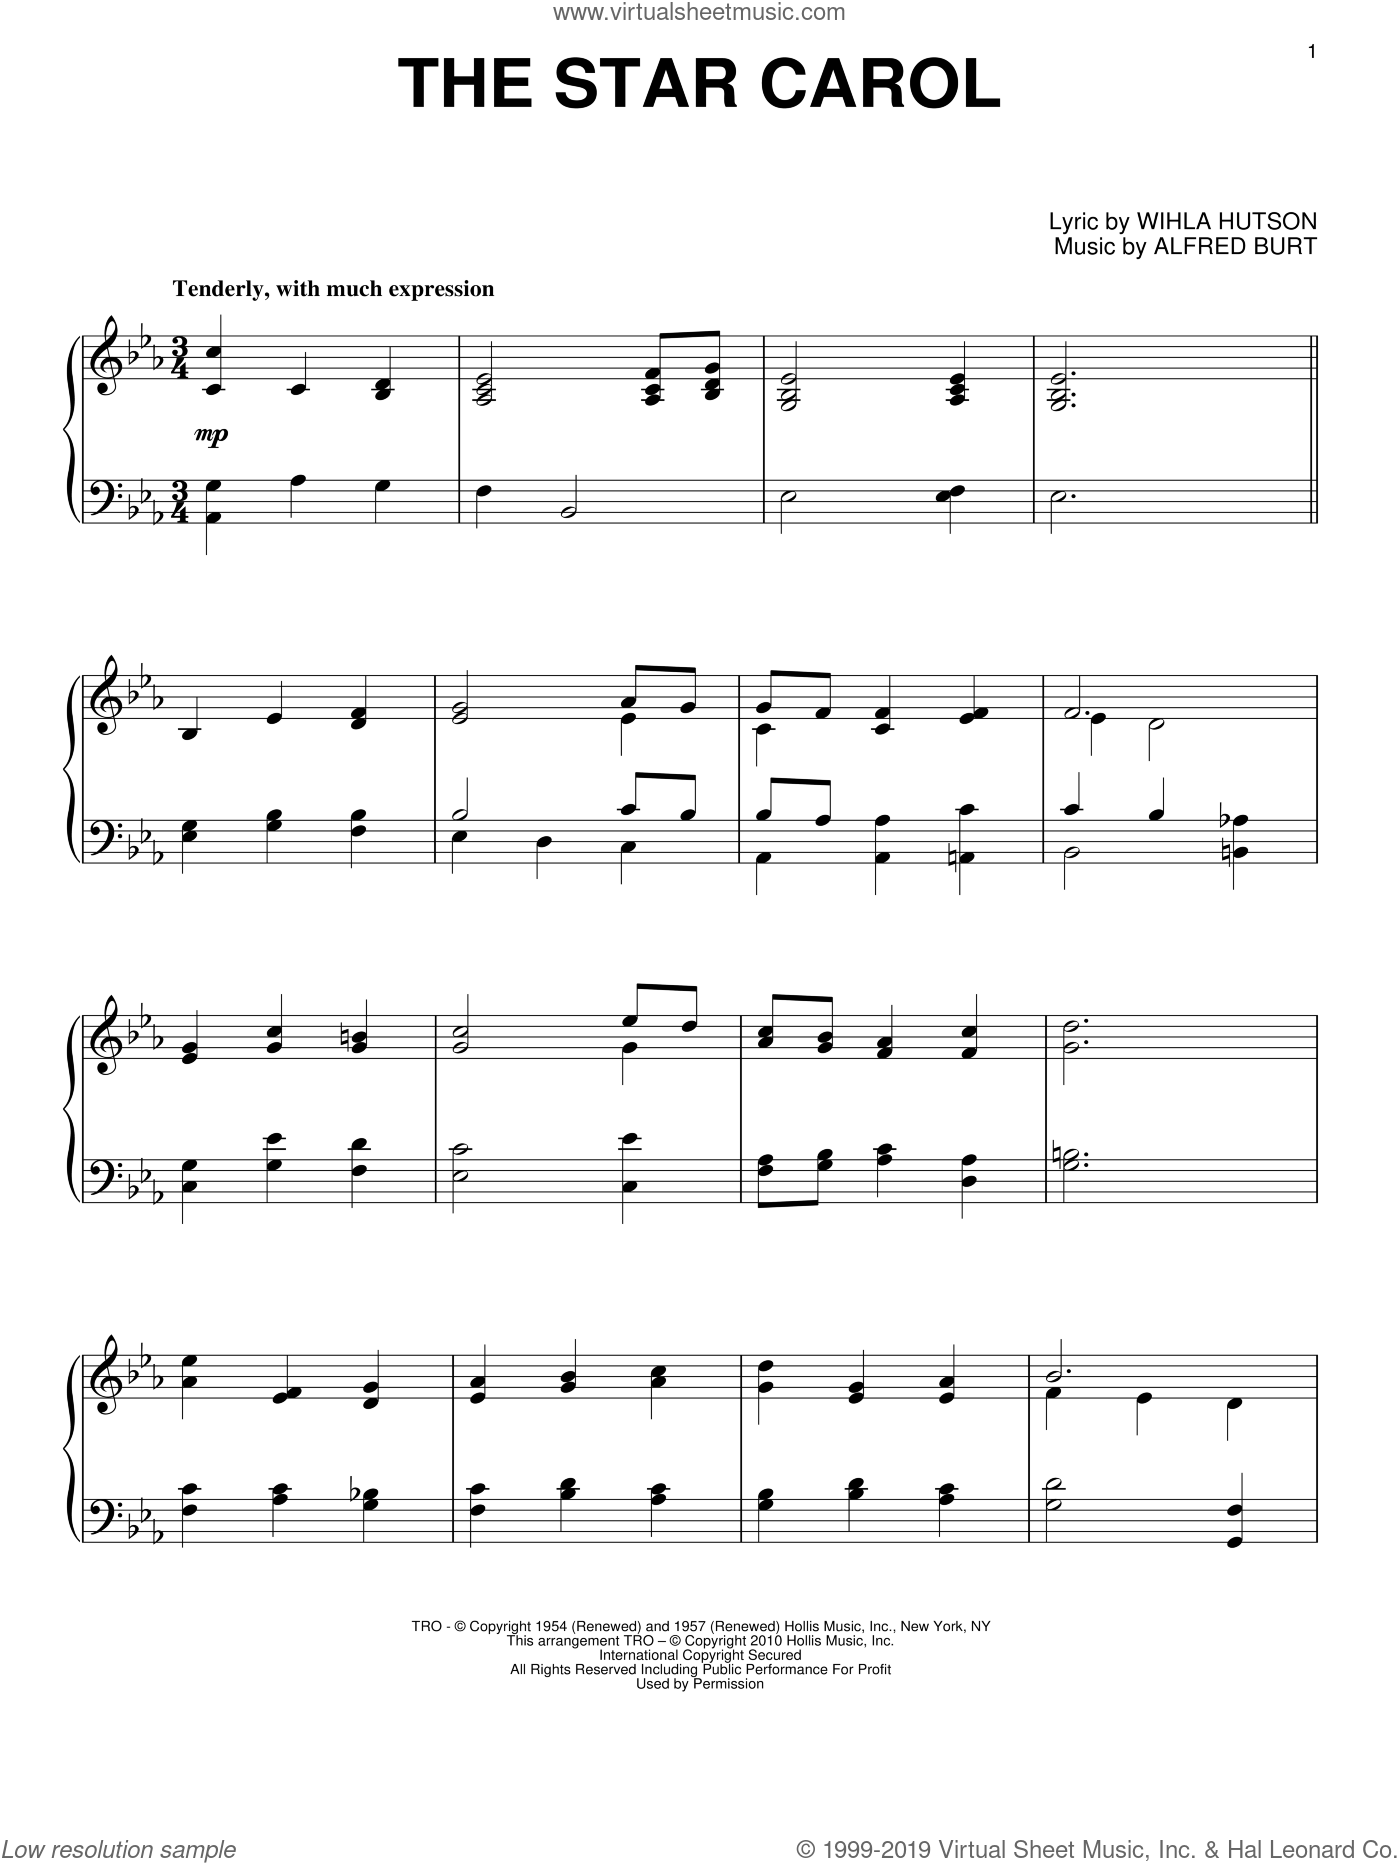 The Star Carol sheet music for piano solo by Peggy Lee, Alfred Burt and Wihla Hutson, intermediate skill level